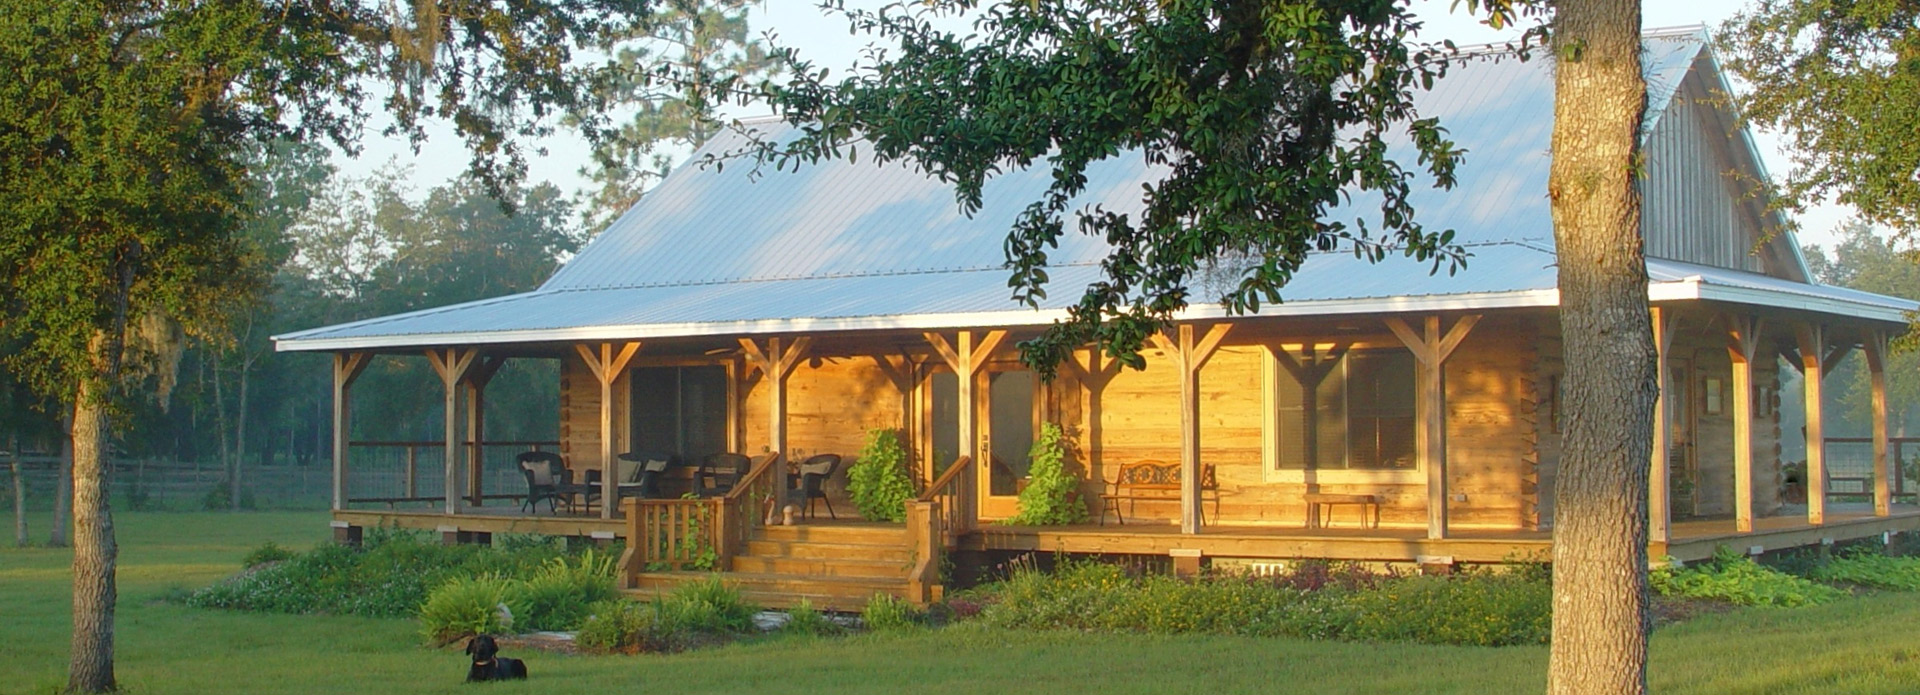 About Log Cabin Staining in Arkansas